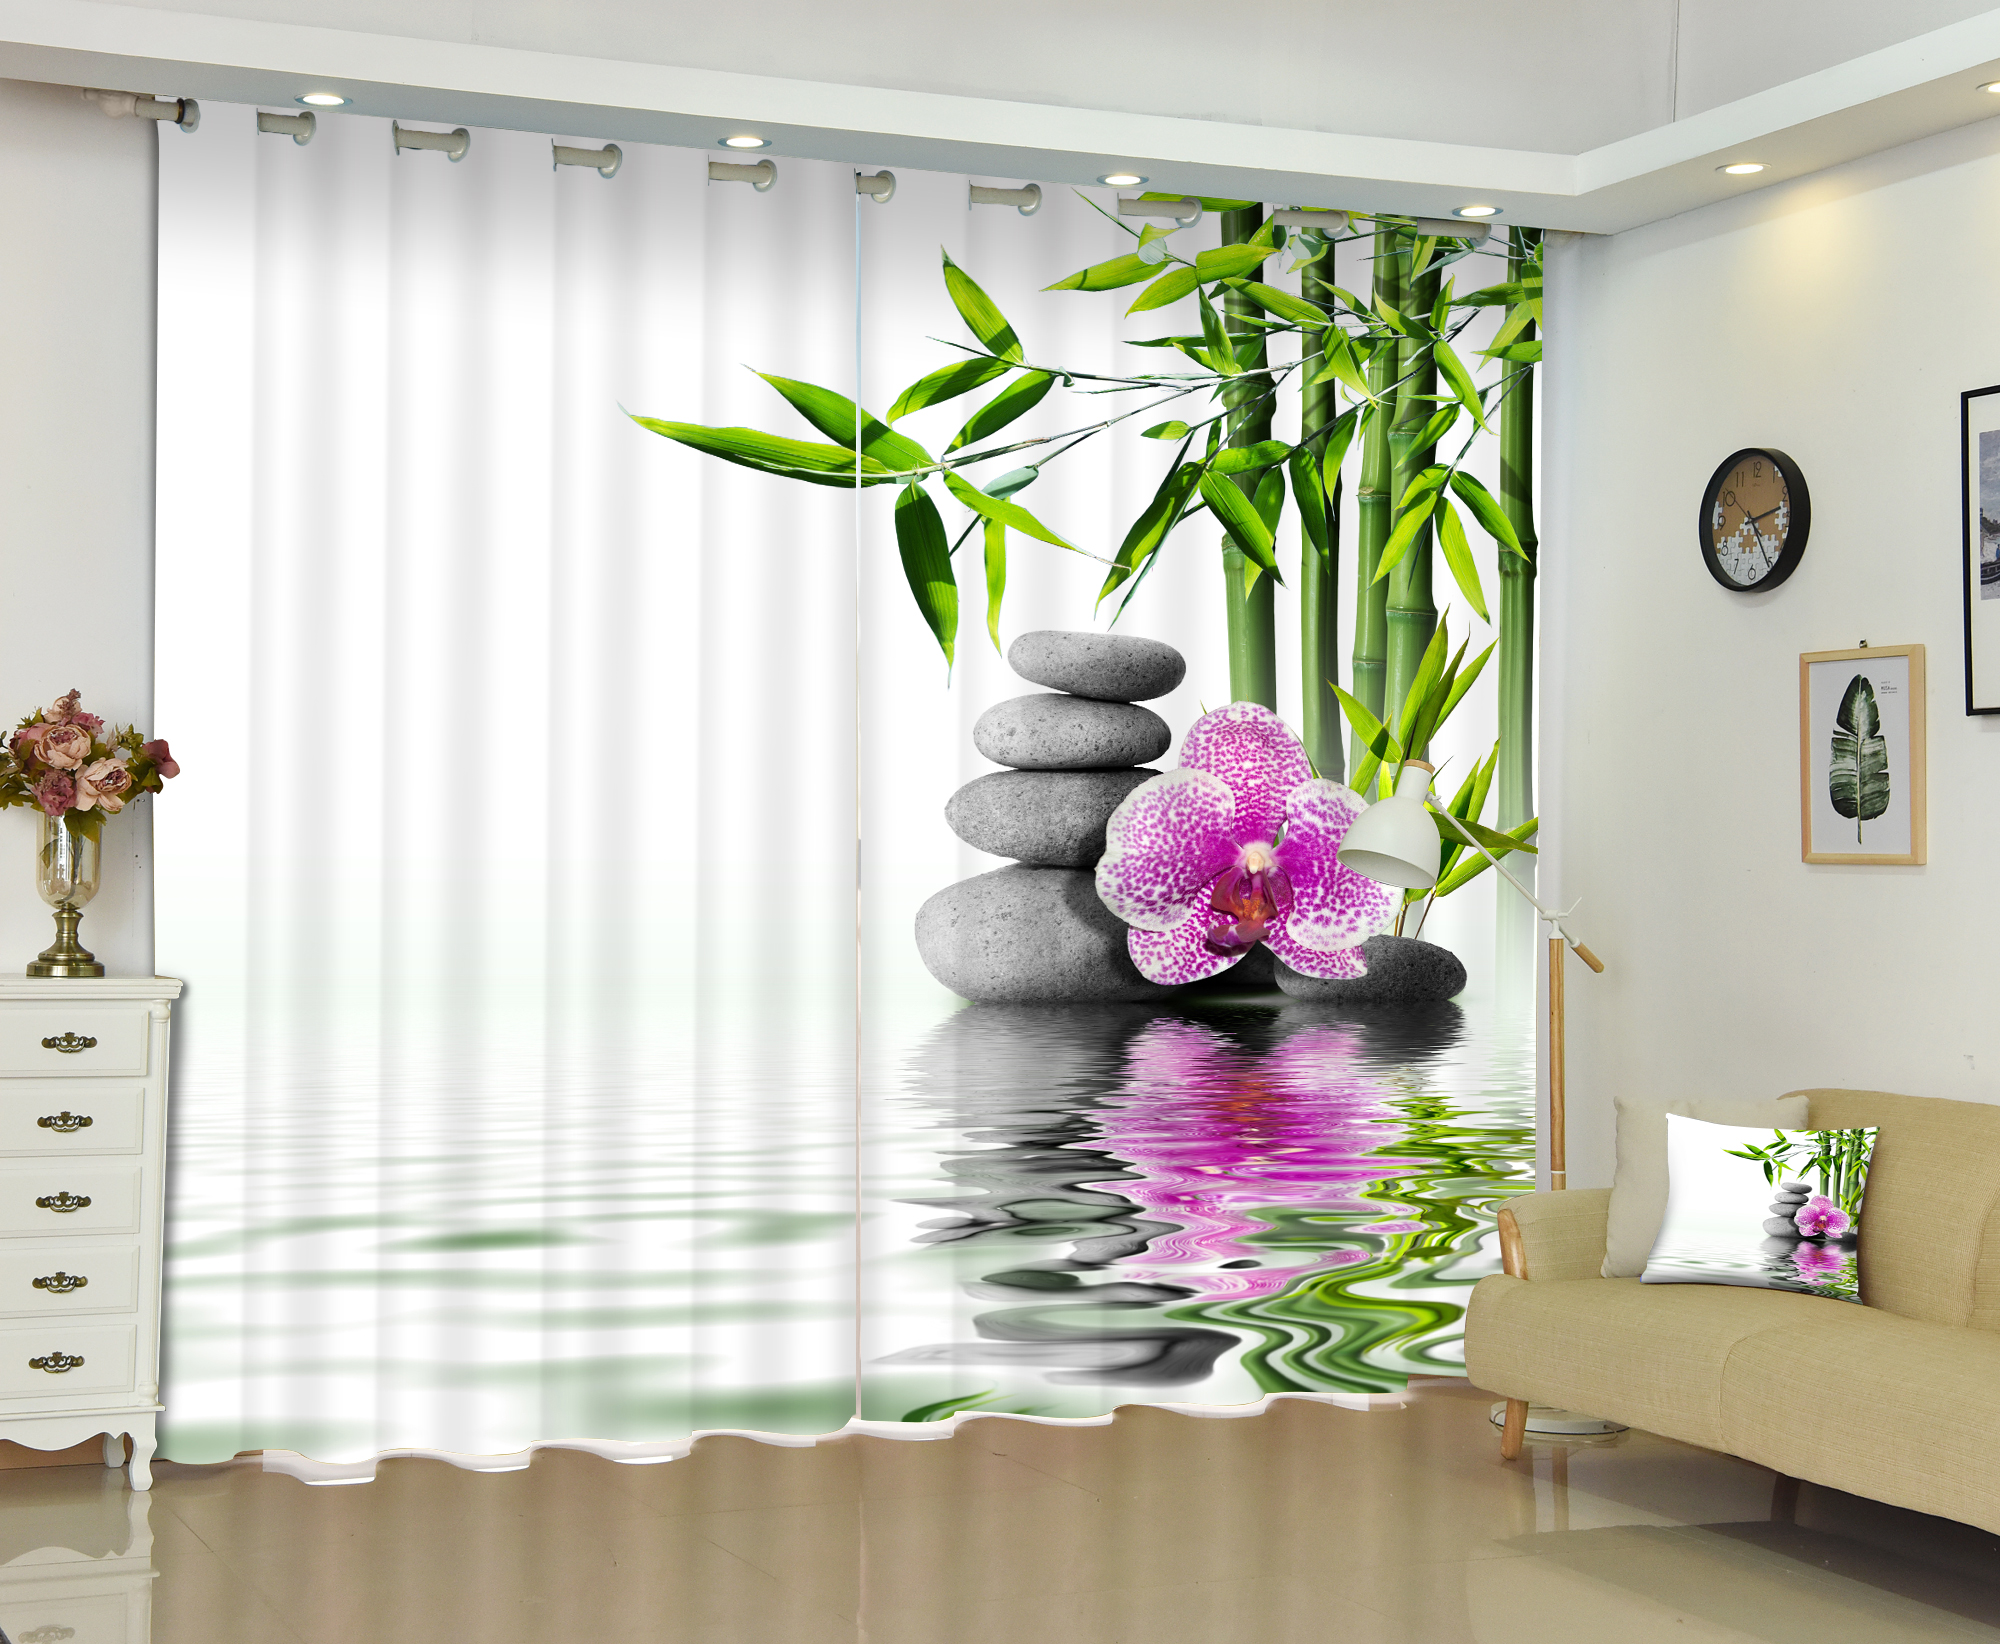 3D Bamboo Water Artistic Conception Photo Window Curtain Customized Size